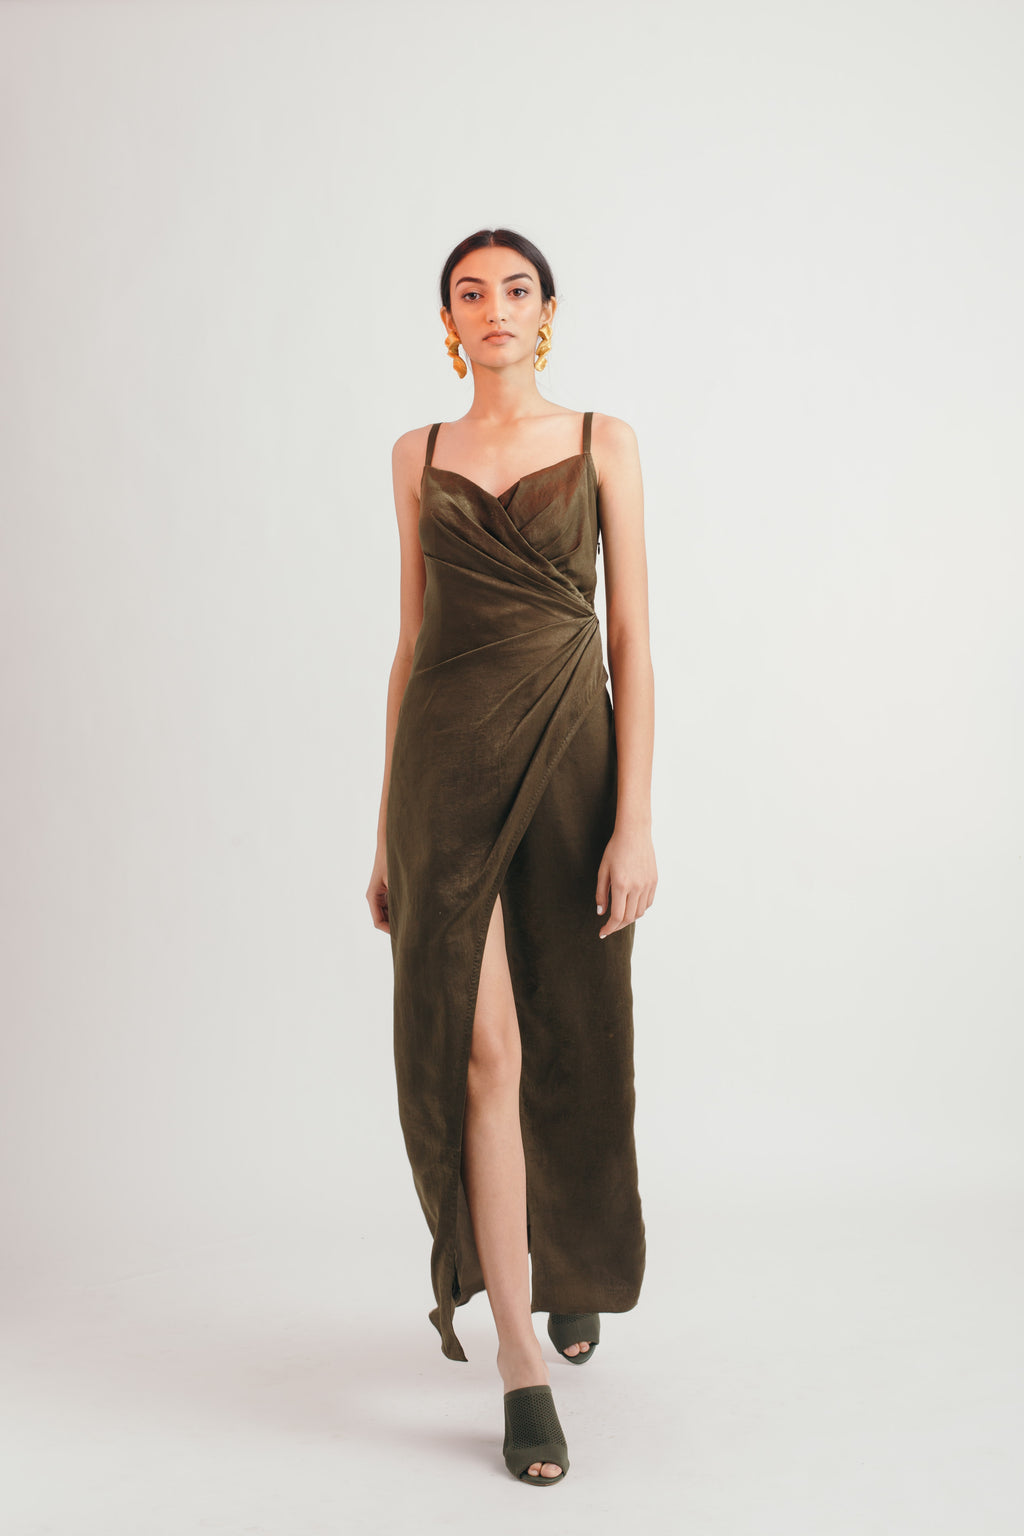 Olive Embrace Dress - Bhaavya Bhatnagar